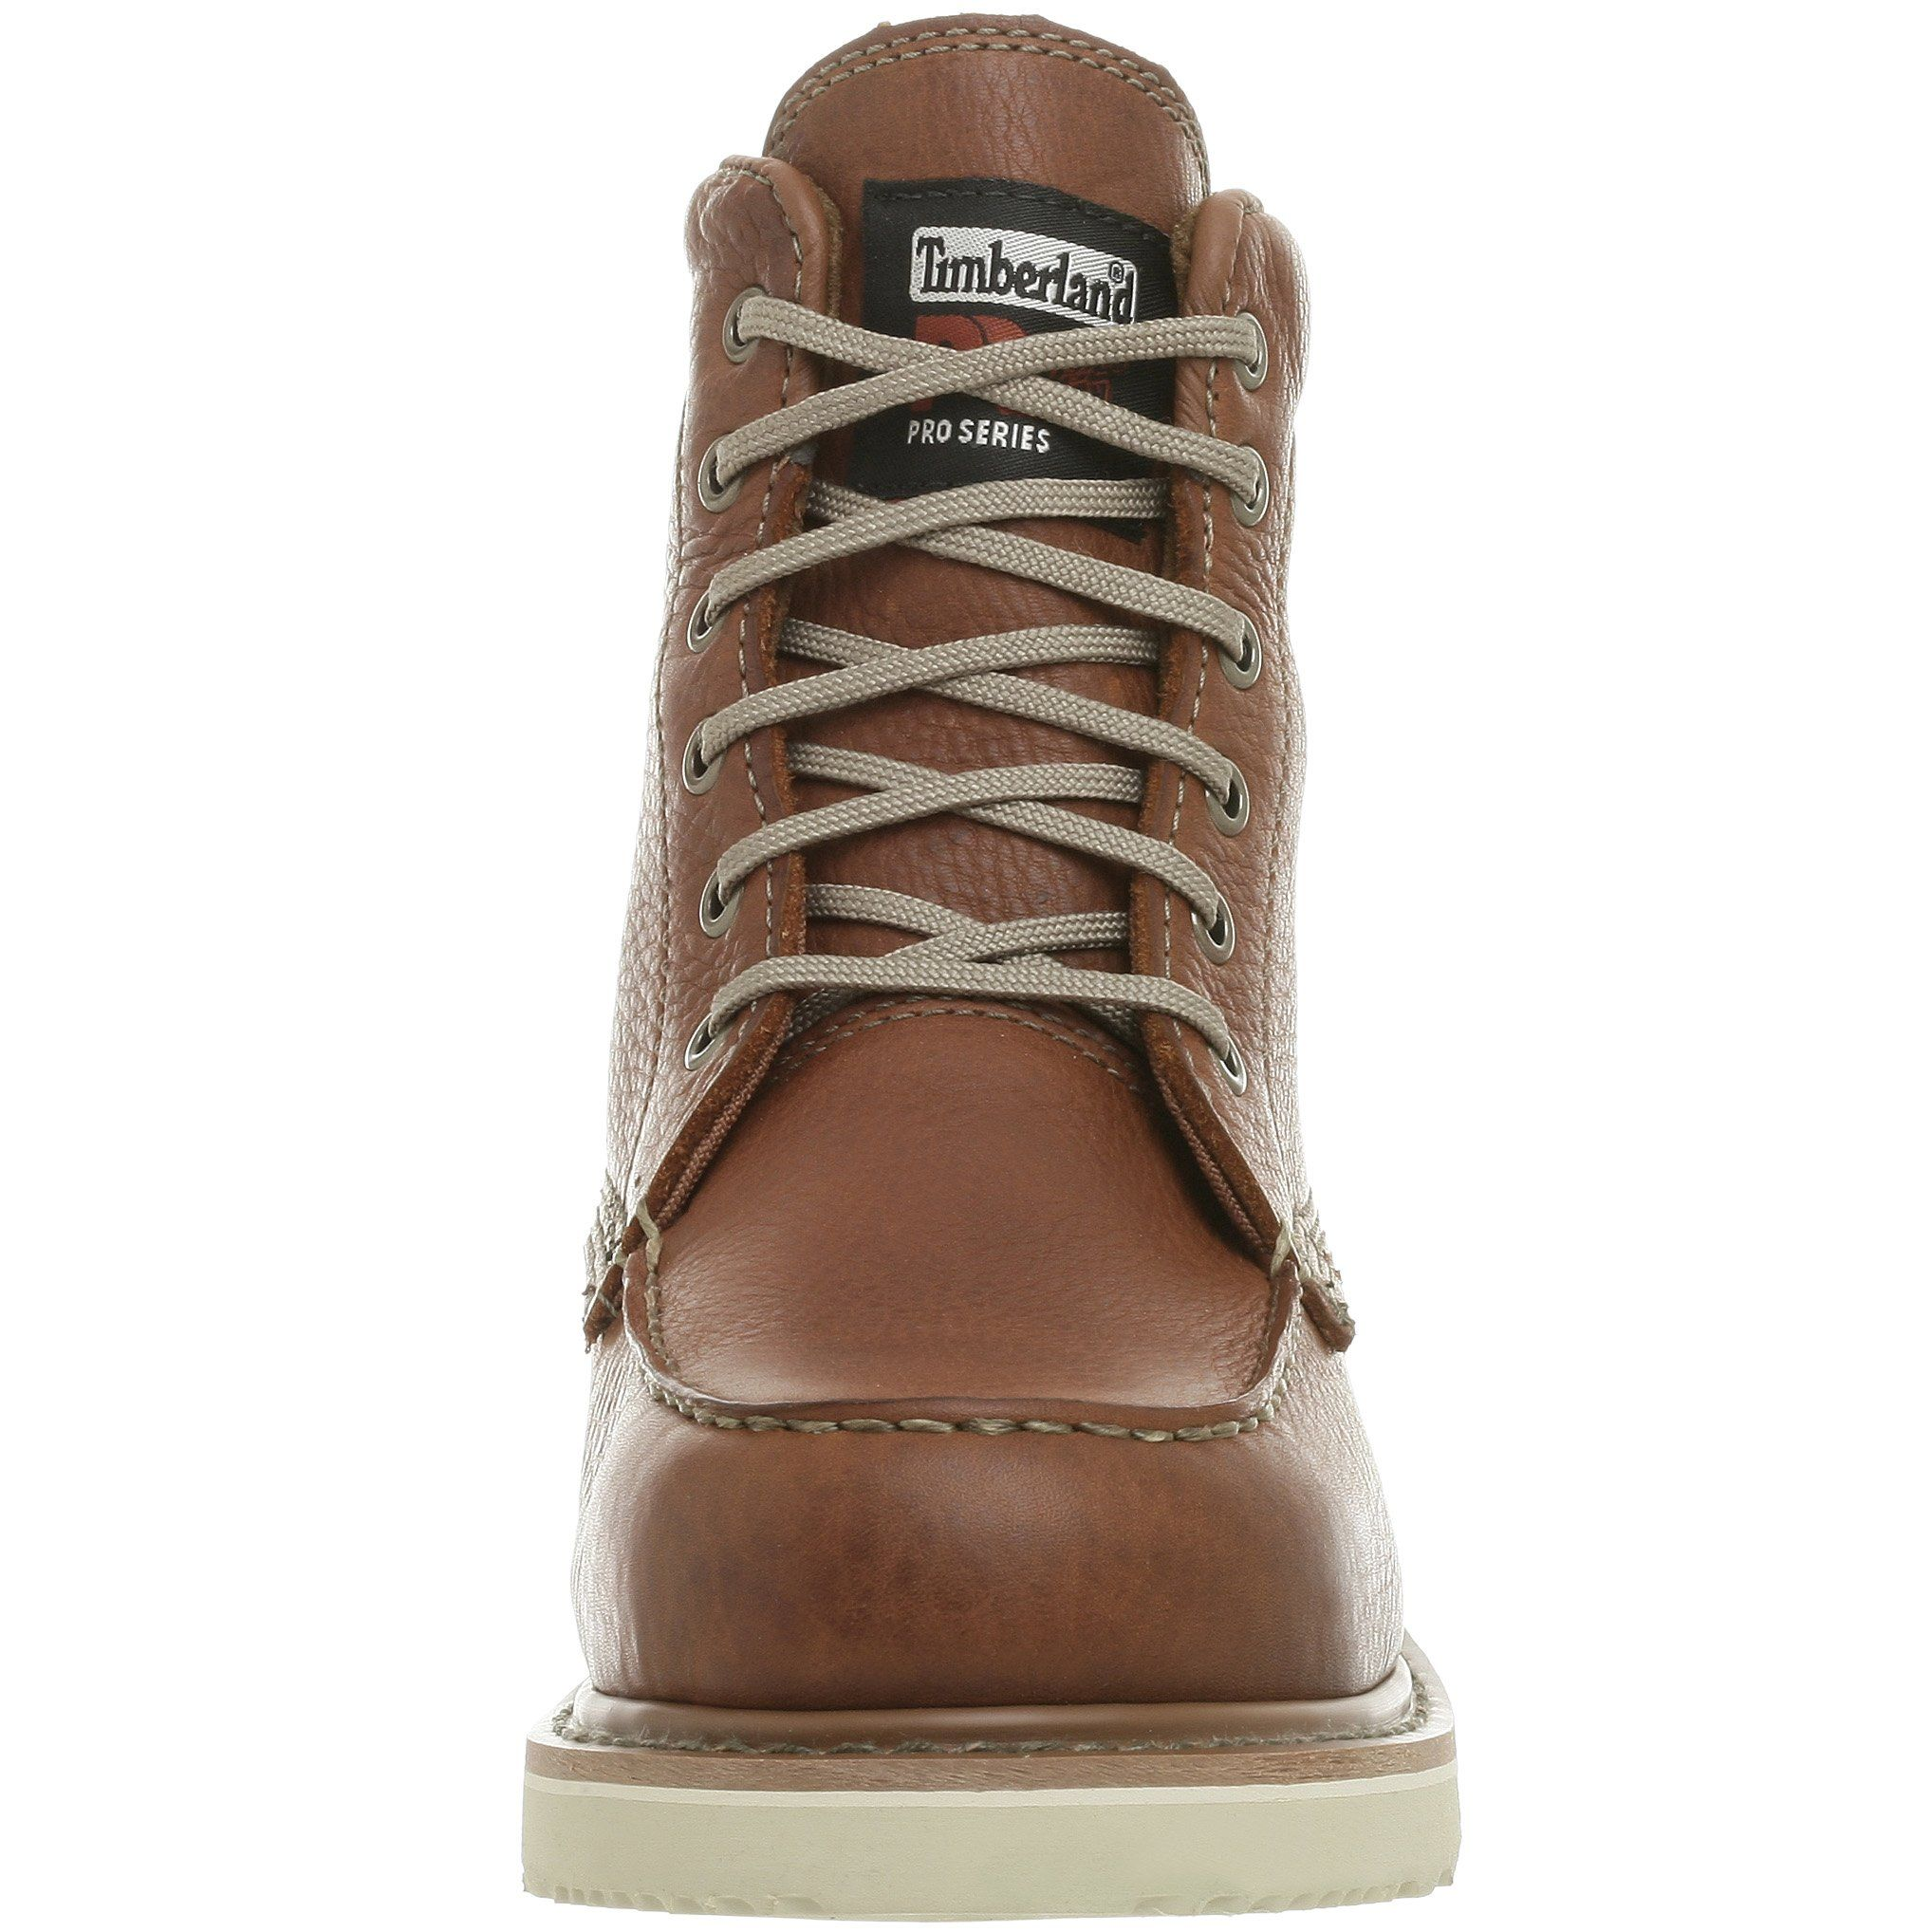 Timberland PRO Mens 53009 Wedge Sole 6 SoftToe BootRust10.5